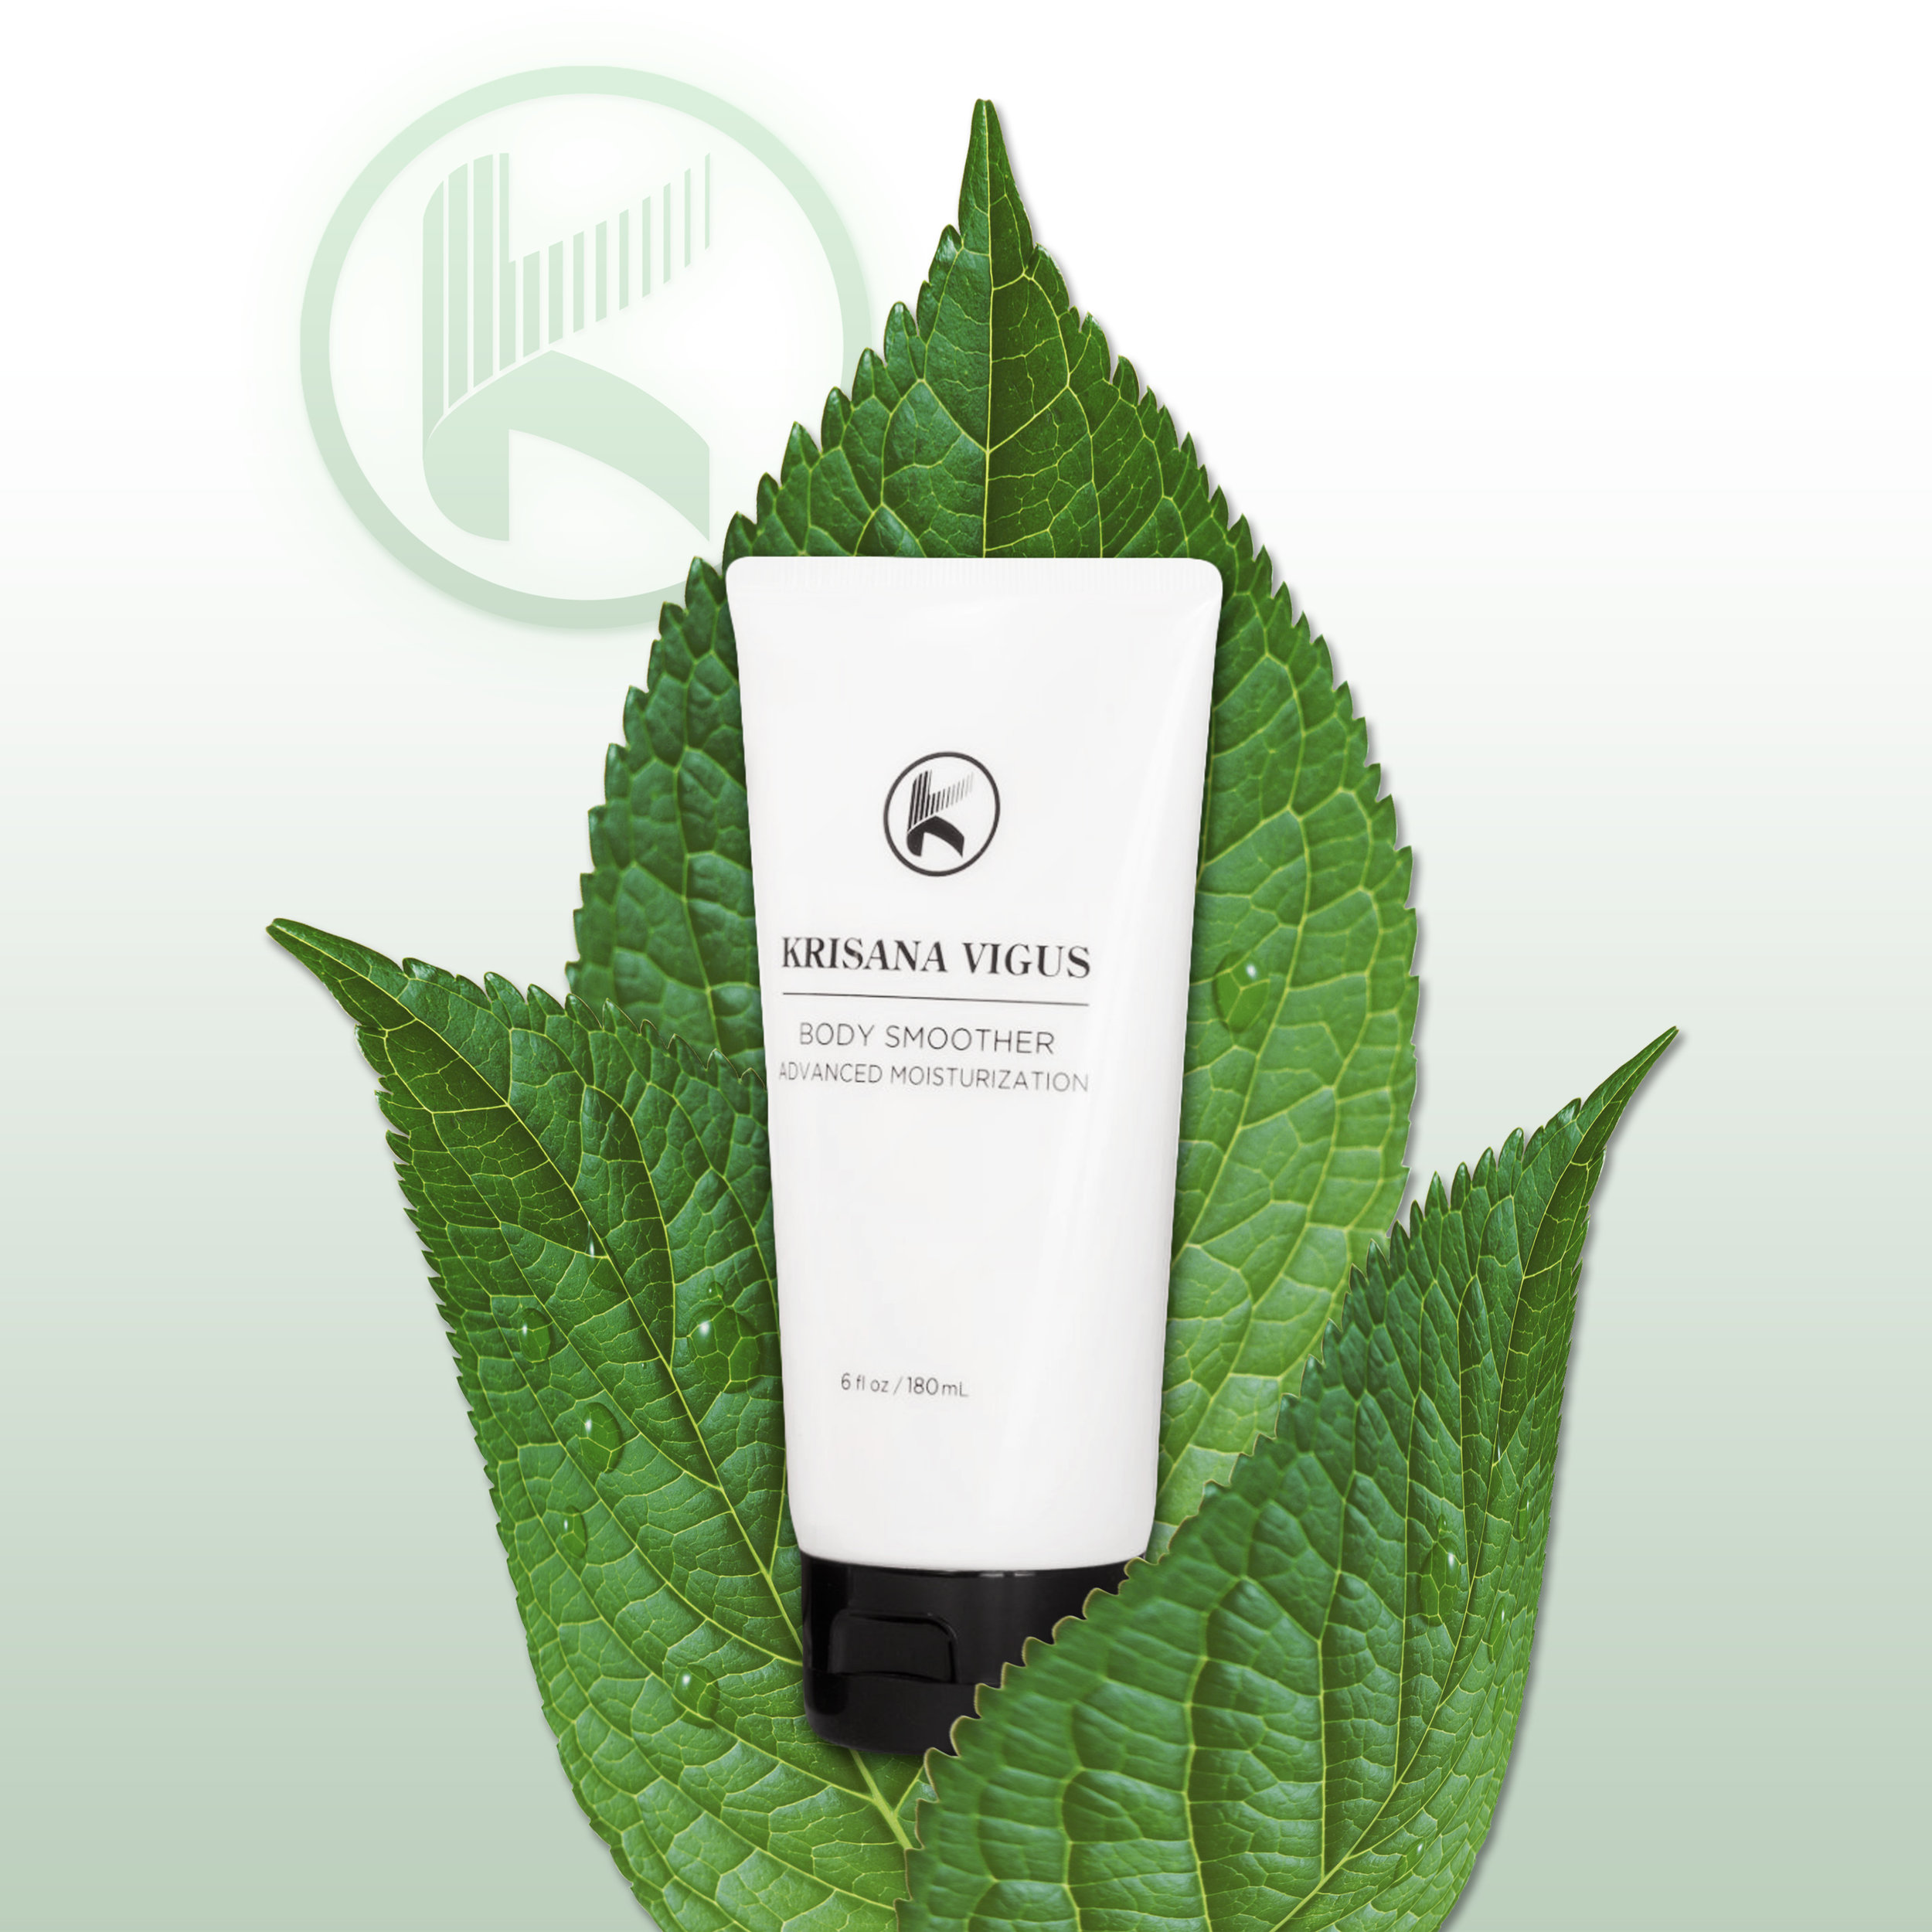 Product Benefits - Stimulates cell regeneration through stem cell technologyPromotes firmer, smoother, and more supple skinDecreases puffiness and chronic cell aging while stimulating collagen cell synthesisProtects against damage from external environmental factorsPromotes a revitalized look while providing long-lasting moisturization